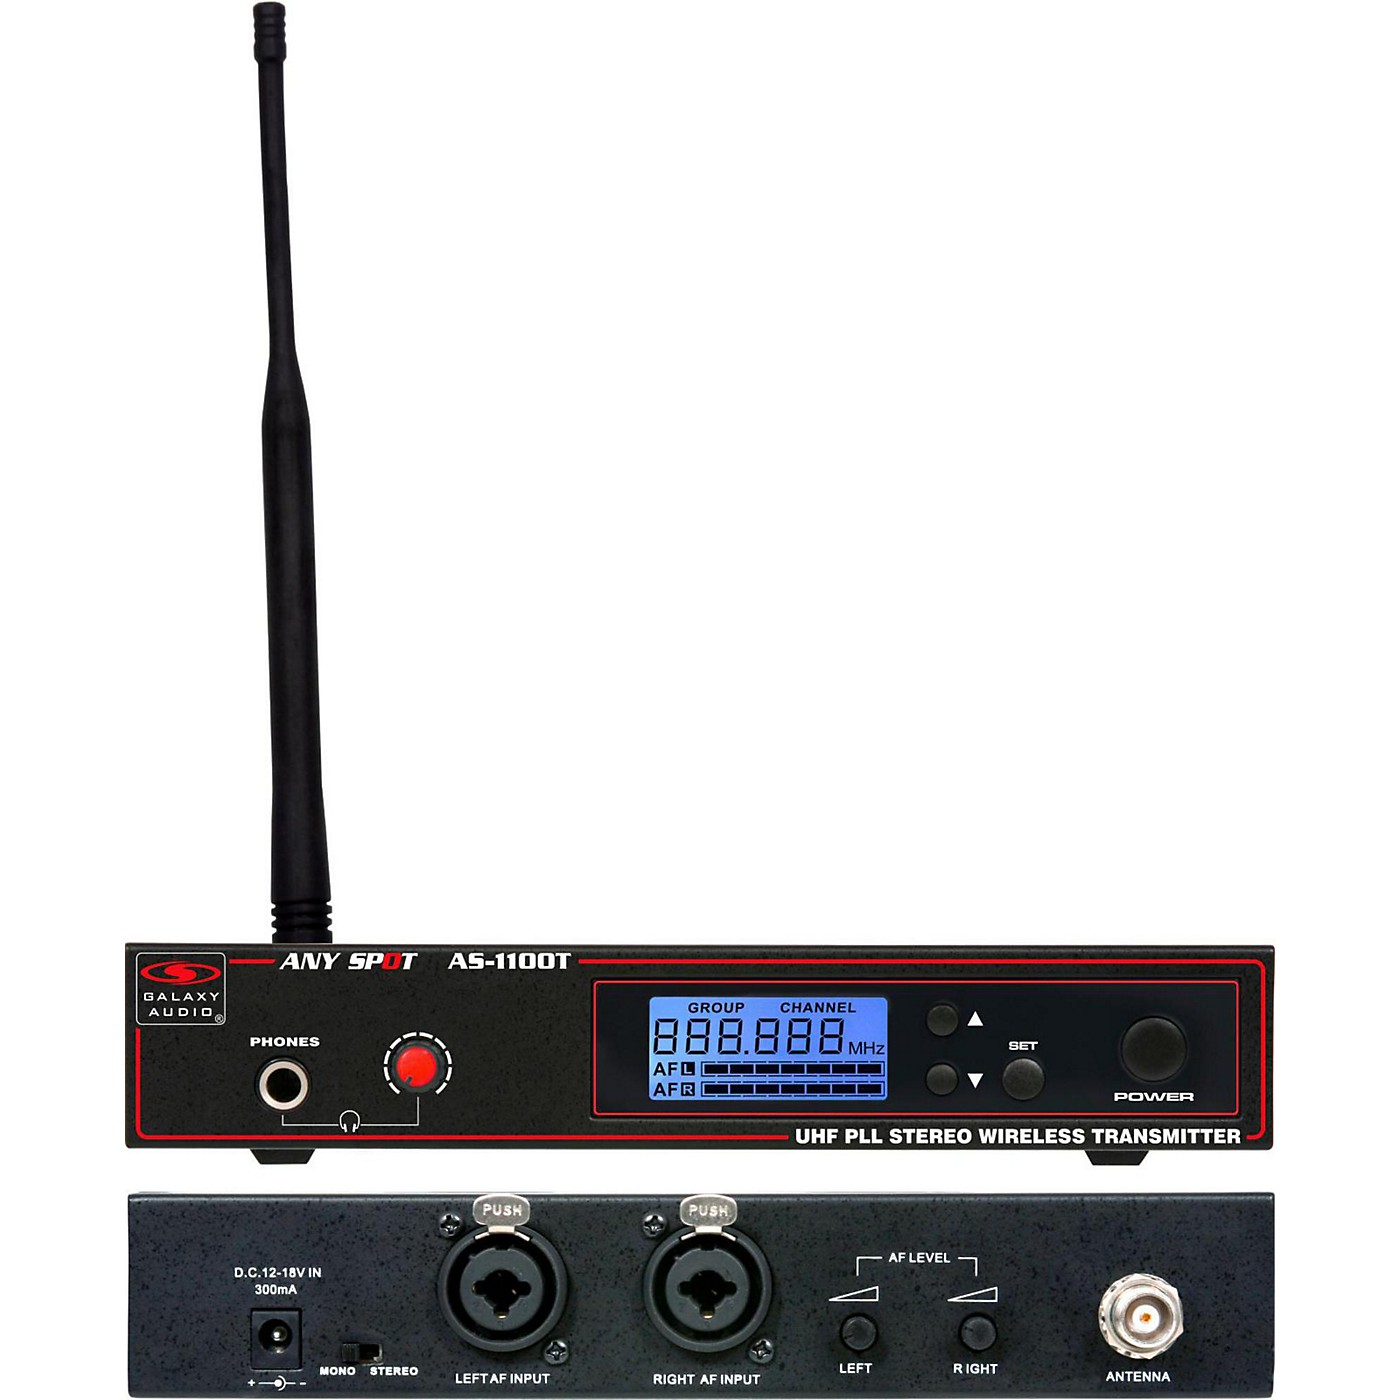 Galaxy Audio 1100 SERIES Wireless In Ear Monitor Transmitter Frequency thumbnail